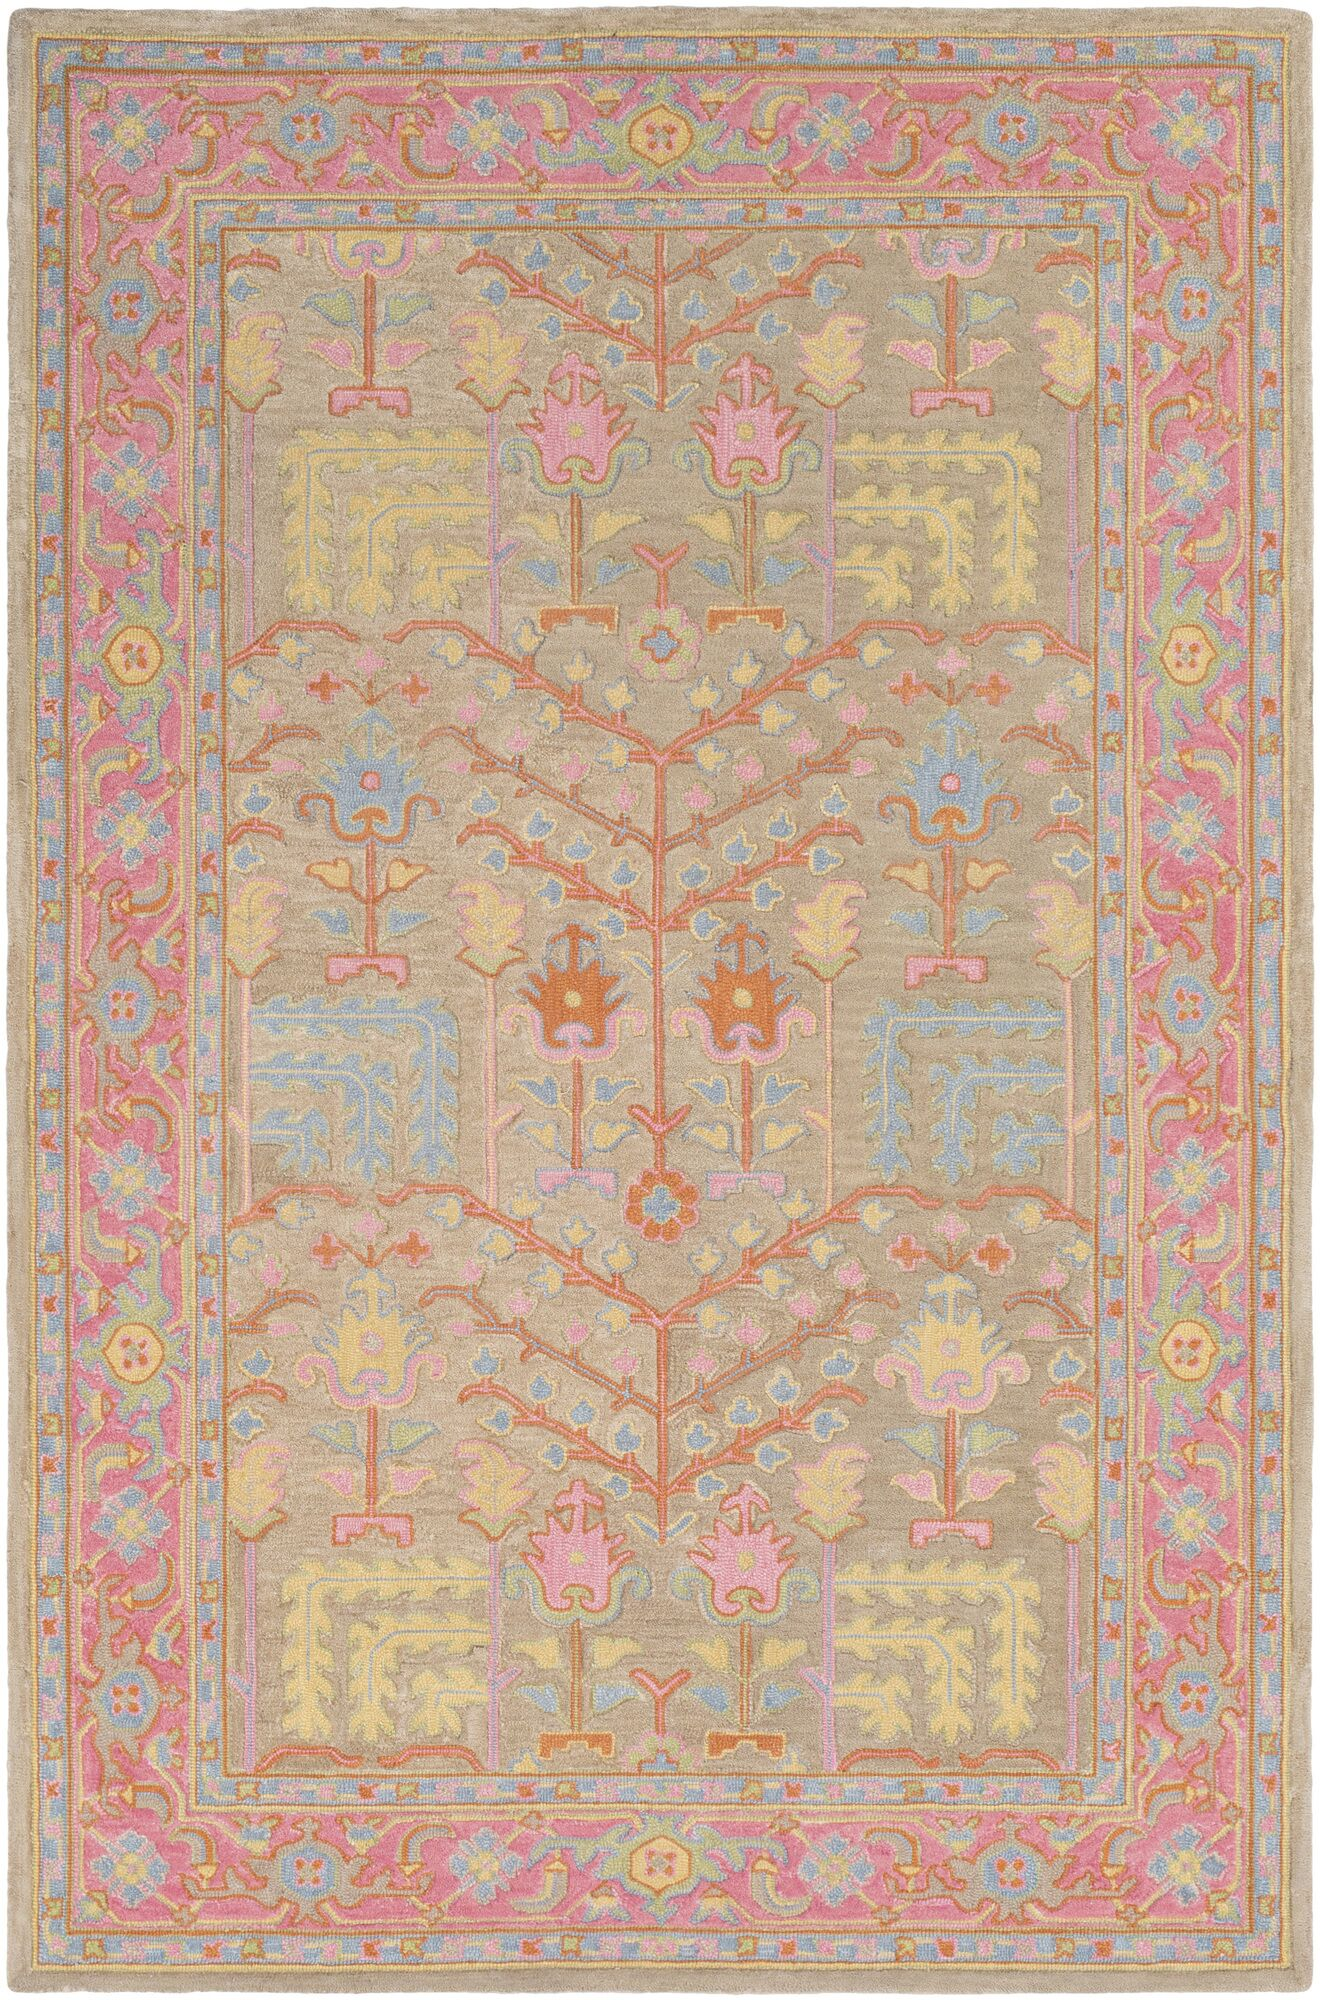 Edgerly Hand Tufted Wool Tan/Bright Pink Area Rug Rug Size: Rectangle 5' x 7'6